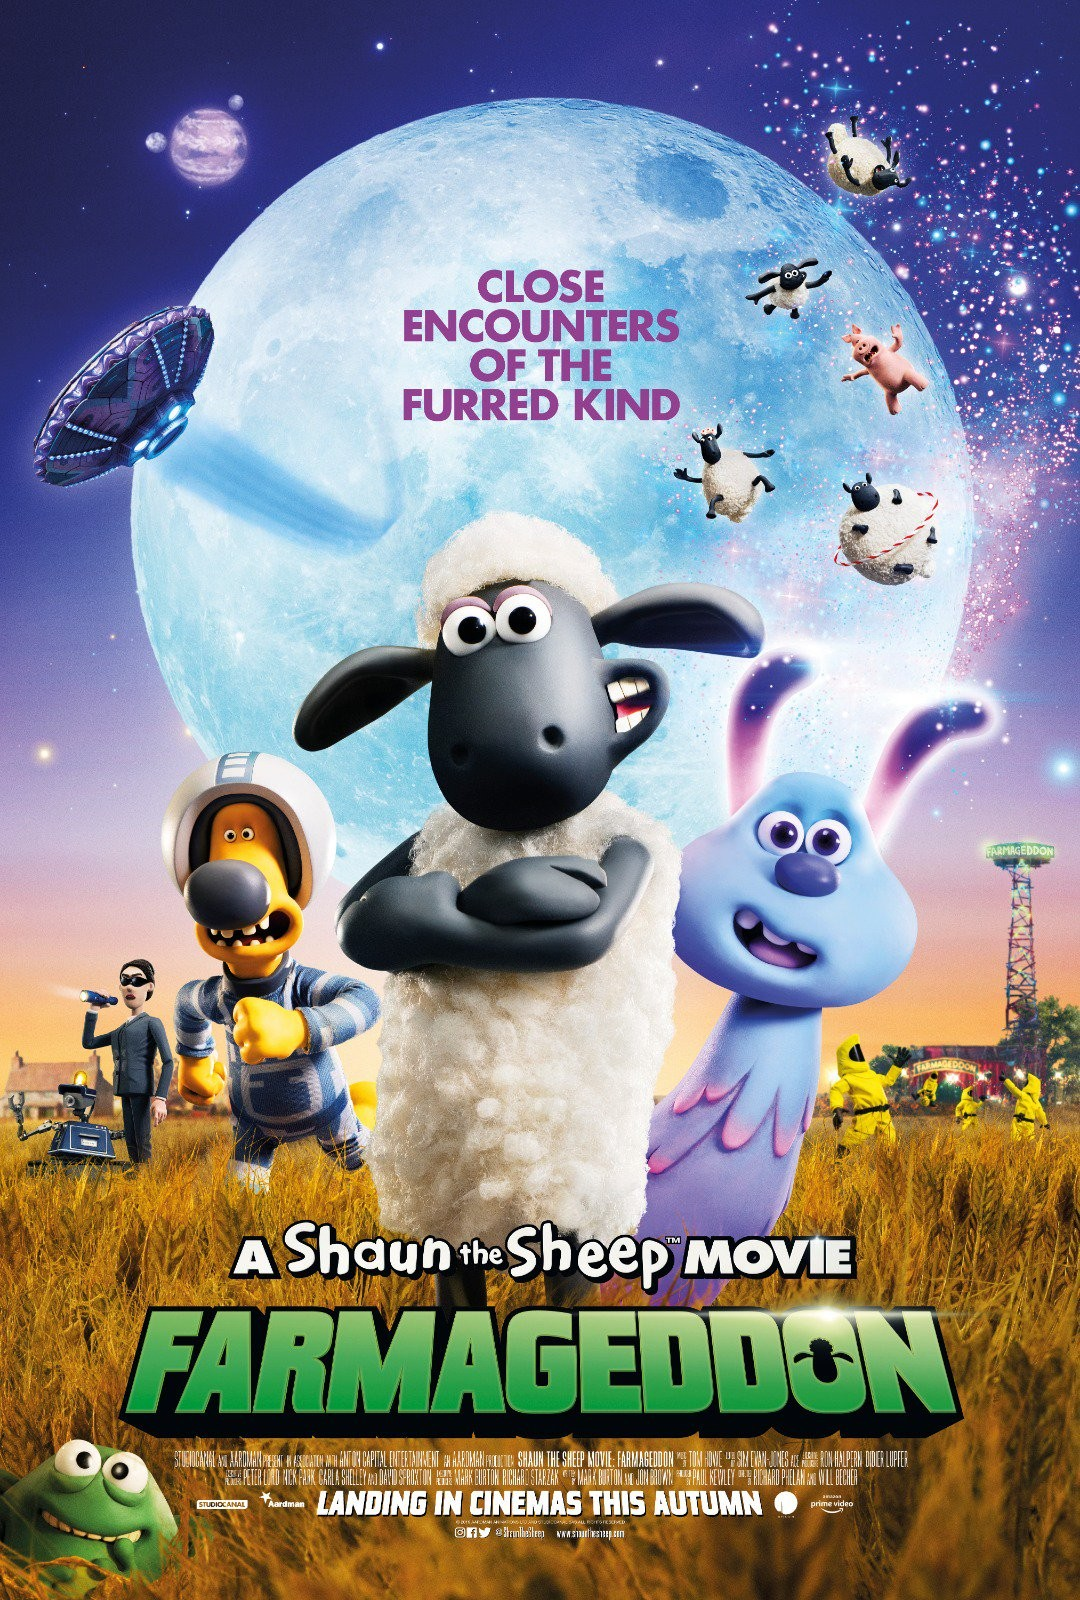 A Shaun the Sheep Movie: Farmageddon 小羊肖恩2:末日农场